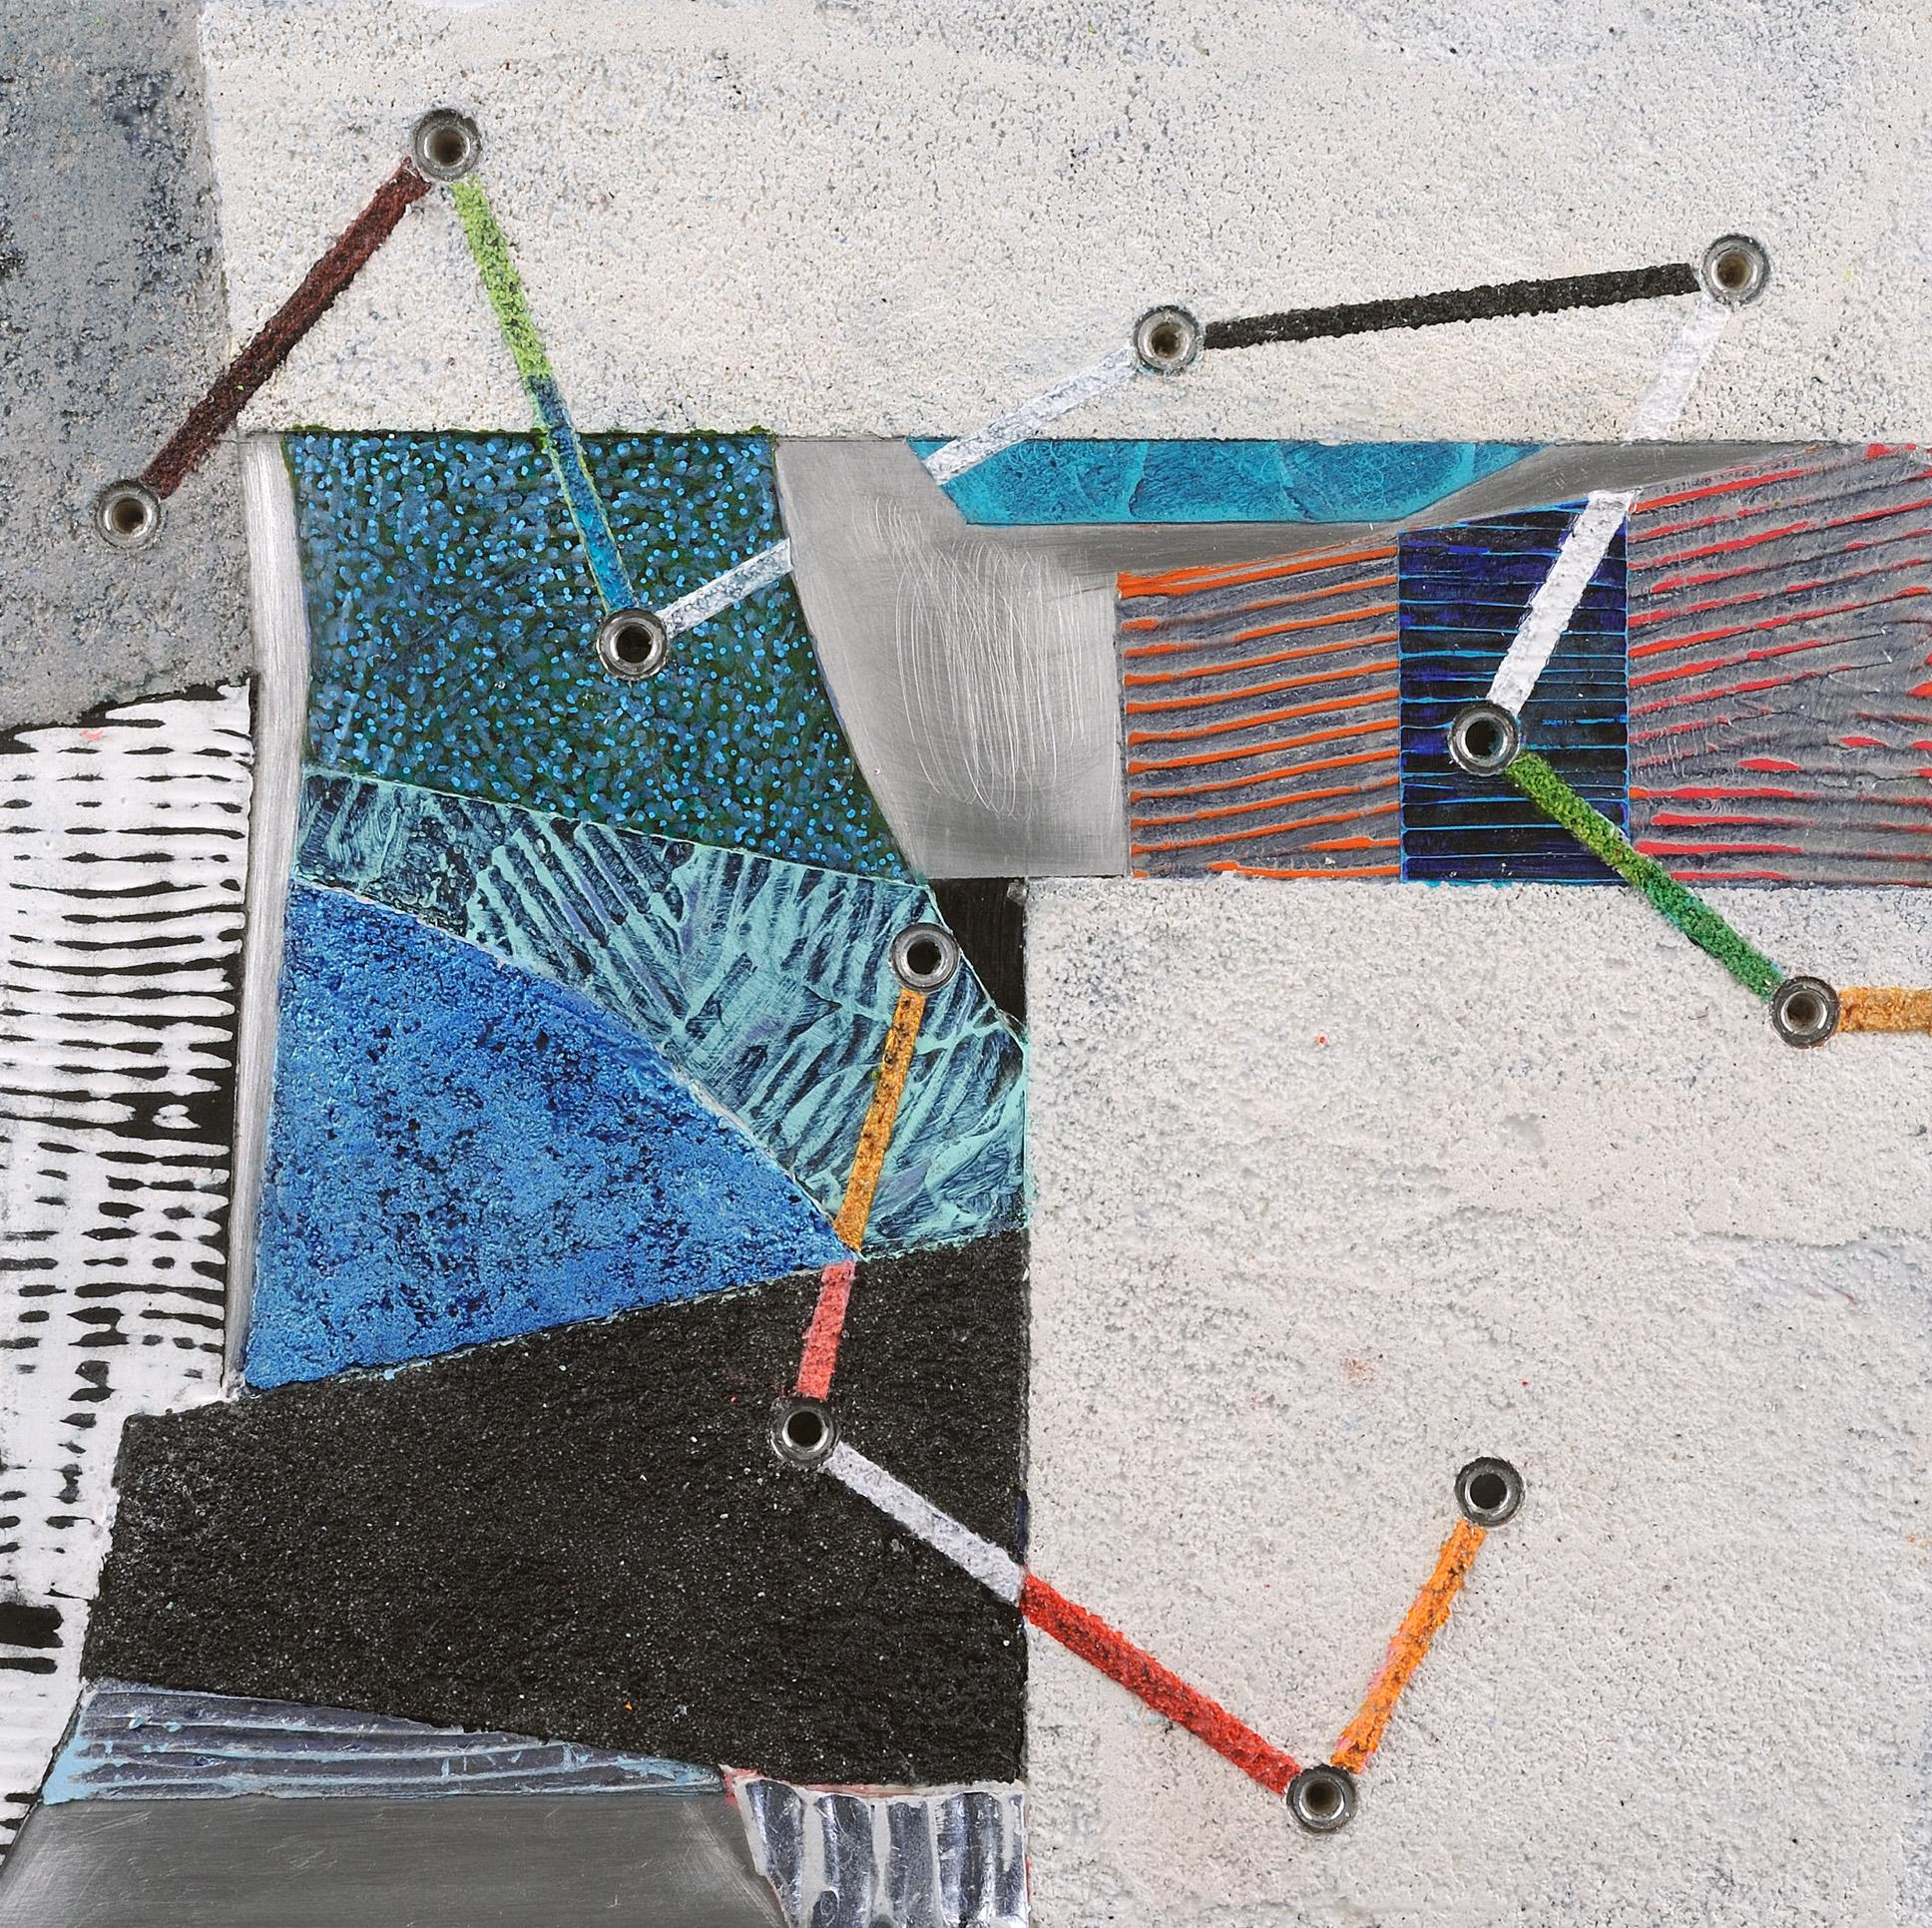 Crossing Lines #14, abstract mixed media painting on aluminum, blue and white